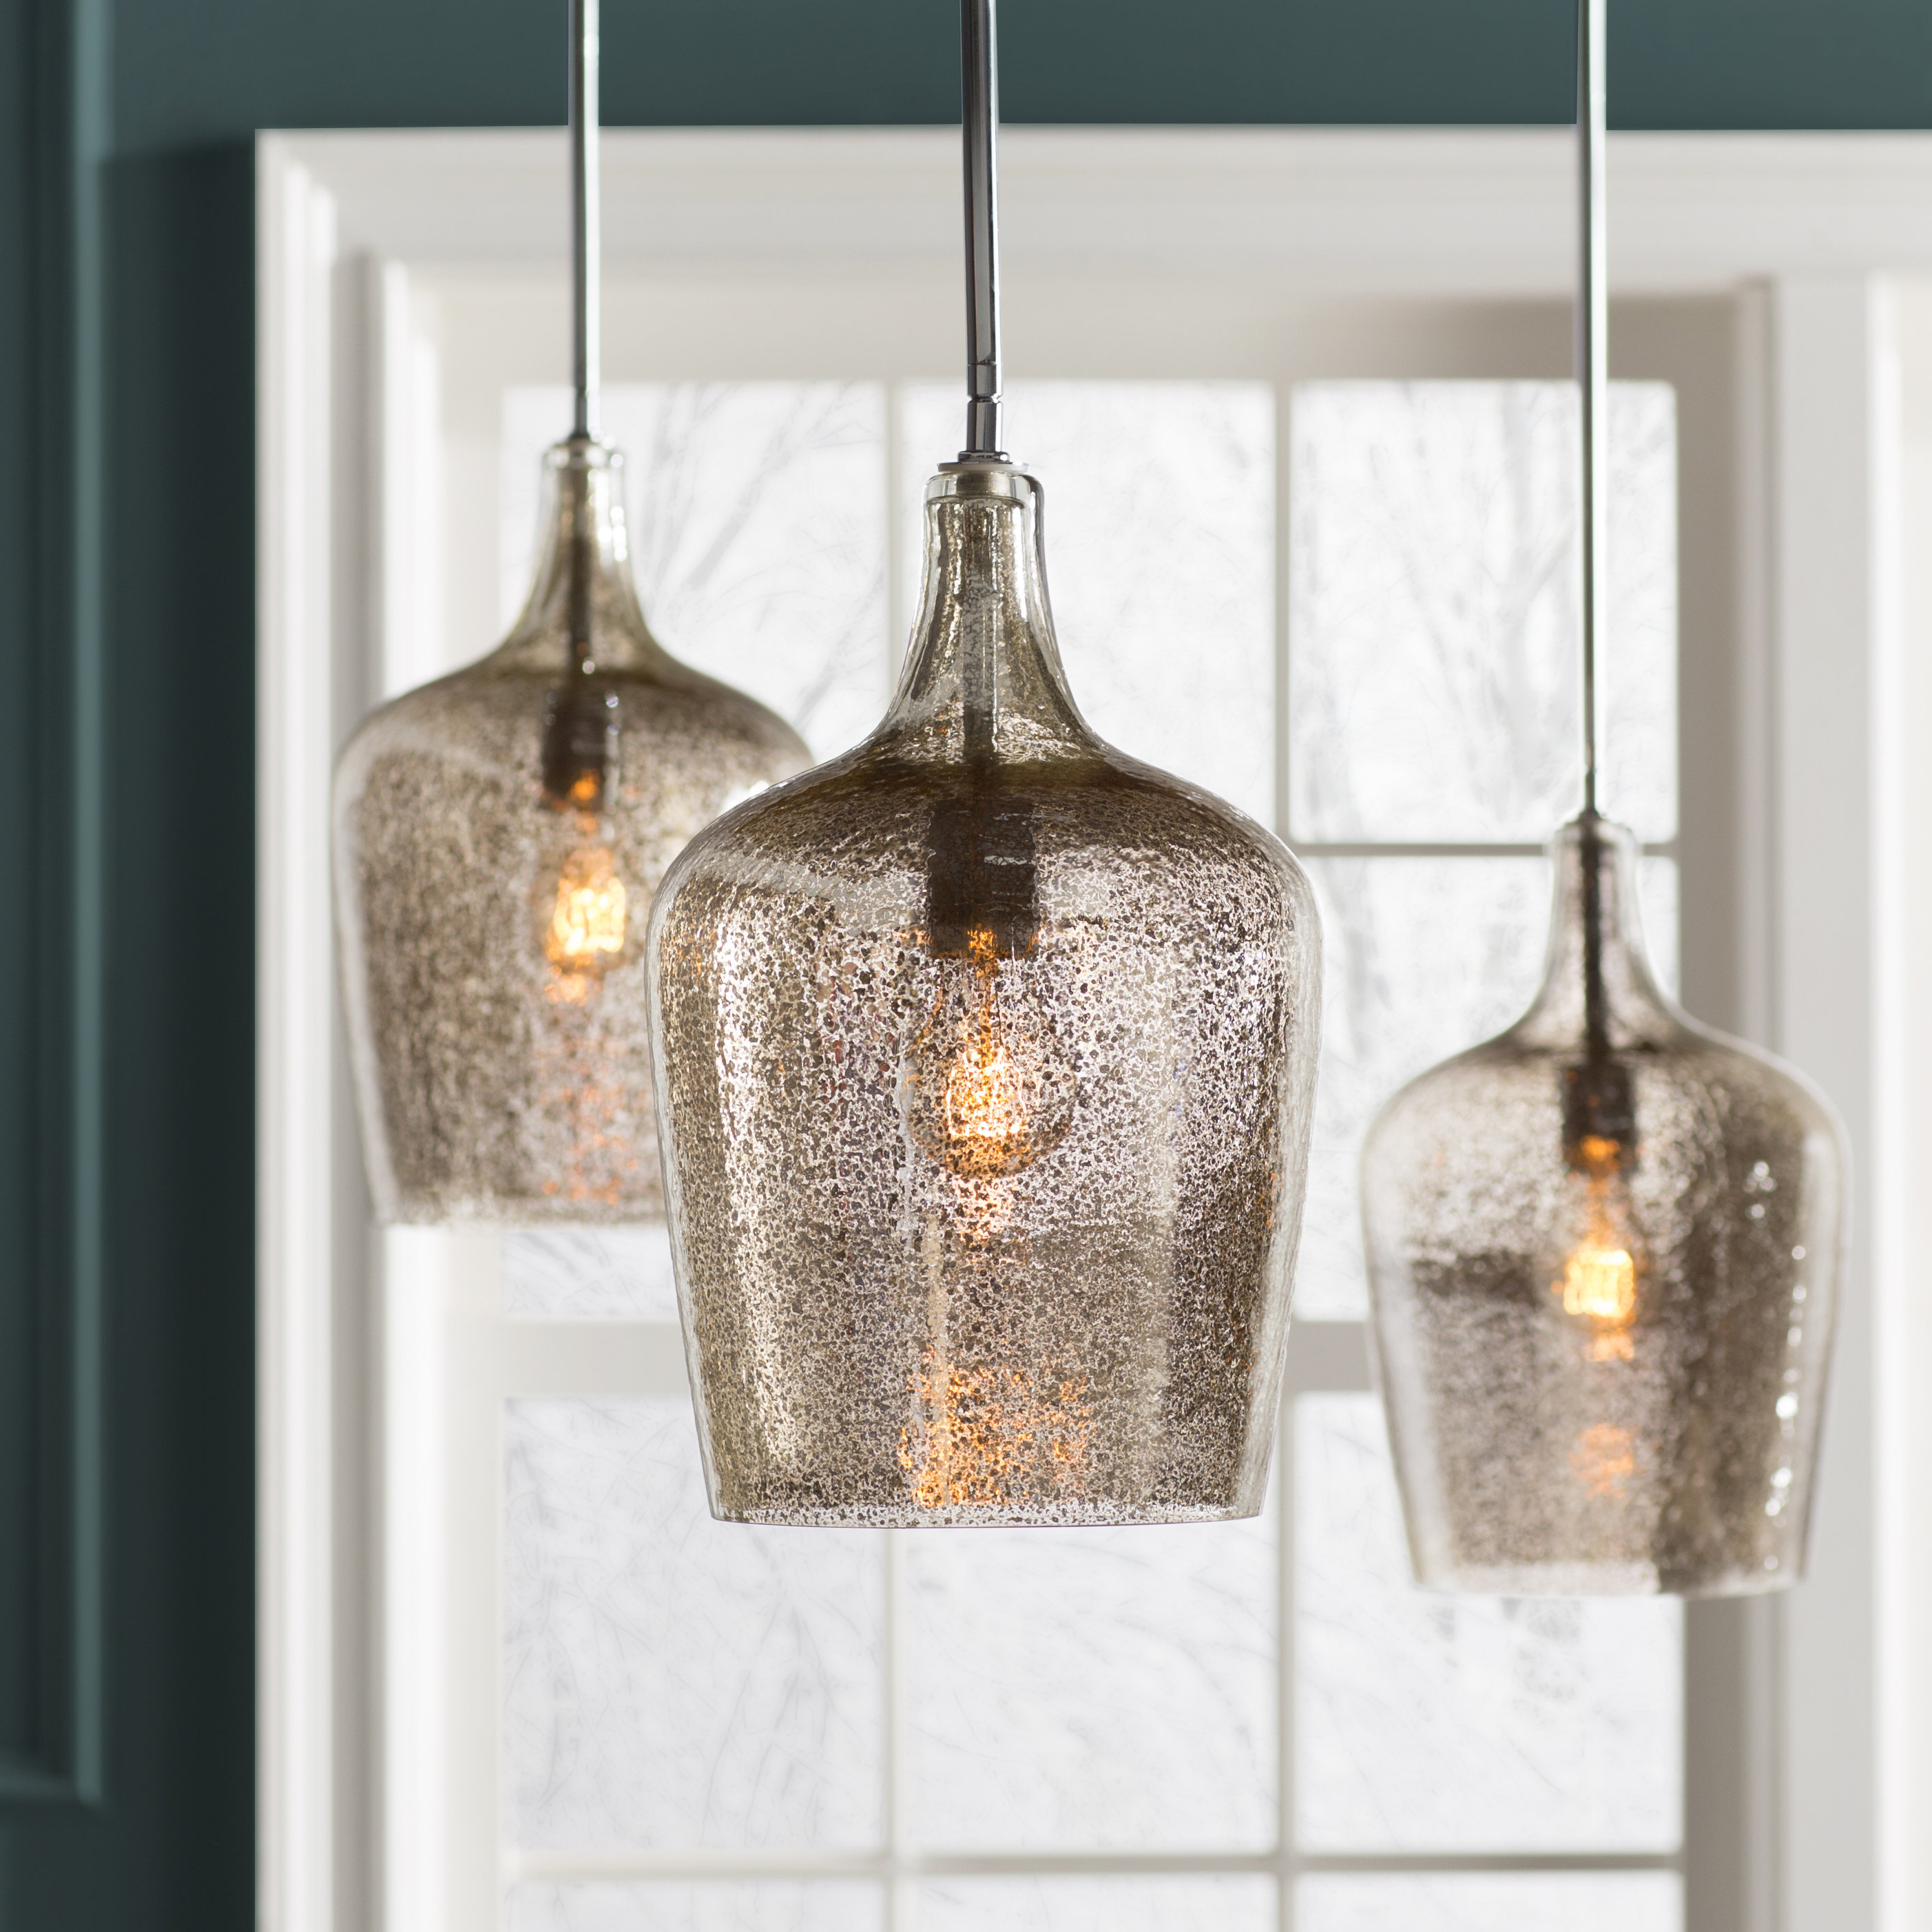 Giacinta 1 Light Single Bell Pendant Throughout Favorite Zachery 5 Light Led Cluster Pendants (View 8 of 25)